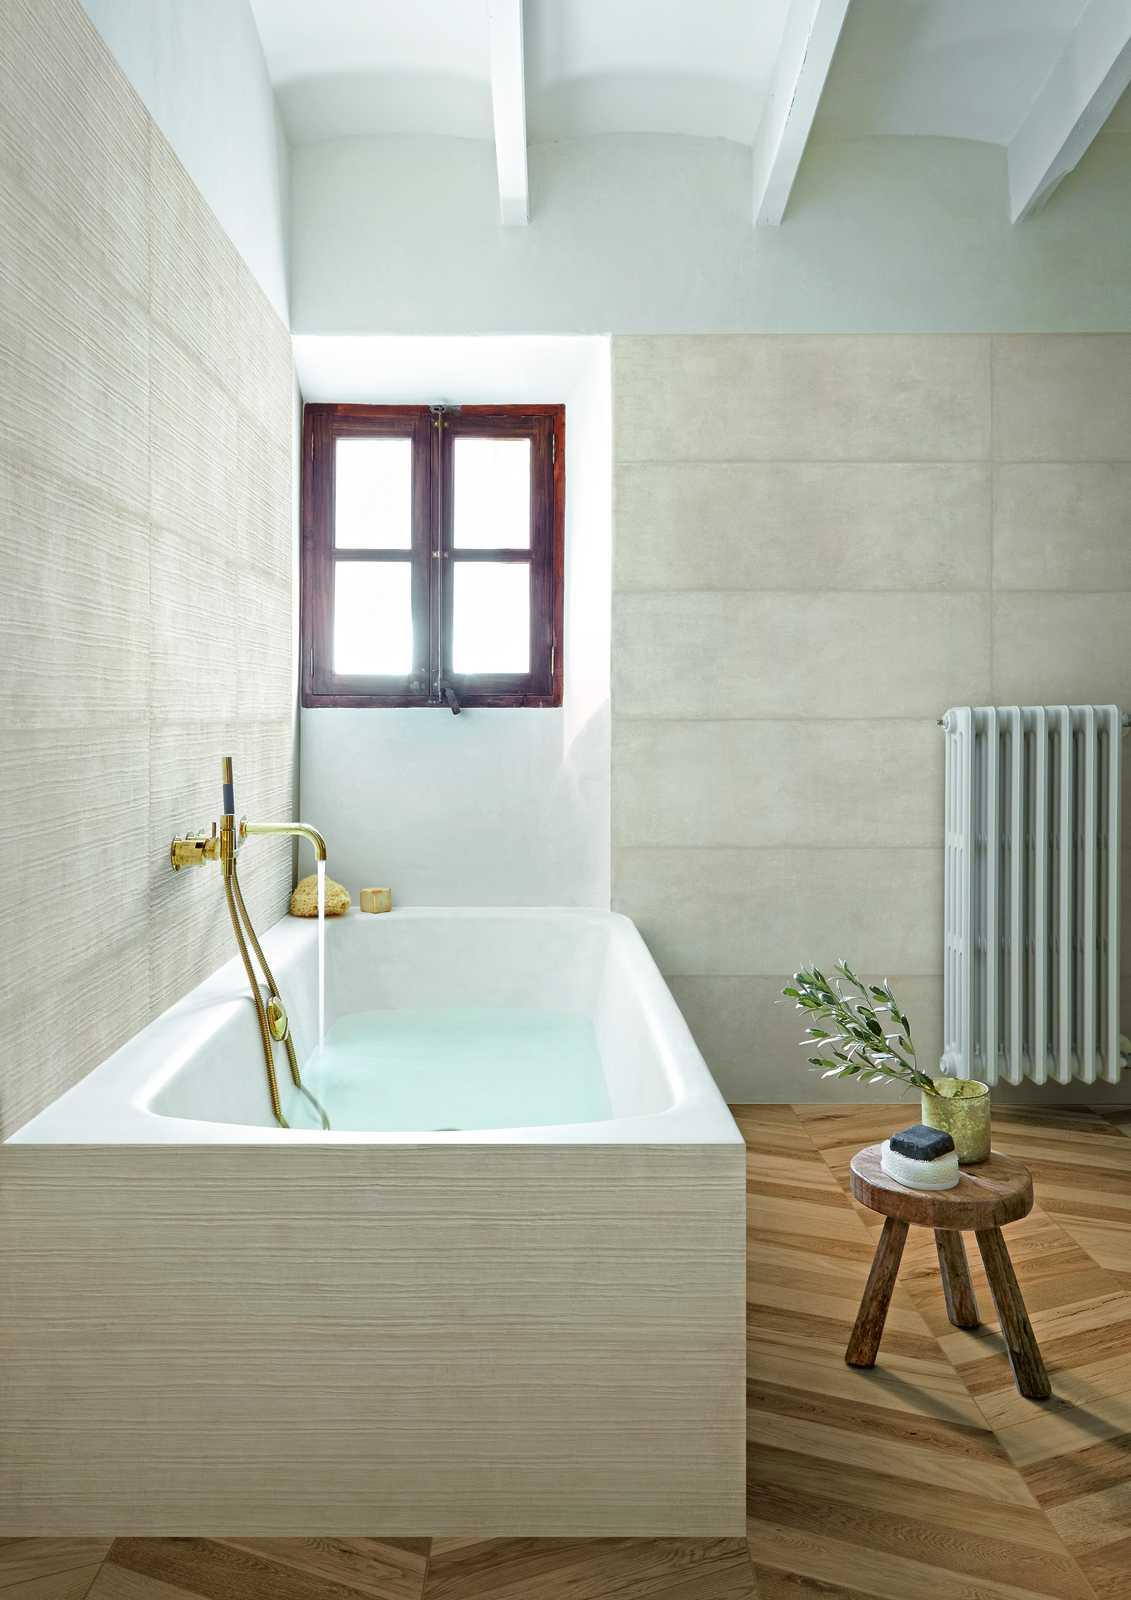 Fresco collection: Plaster Effect Ceramic Tiles | Marazzi